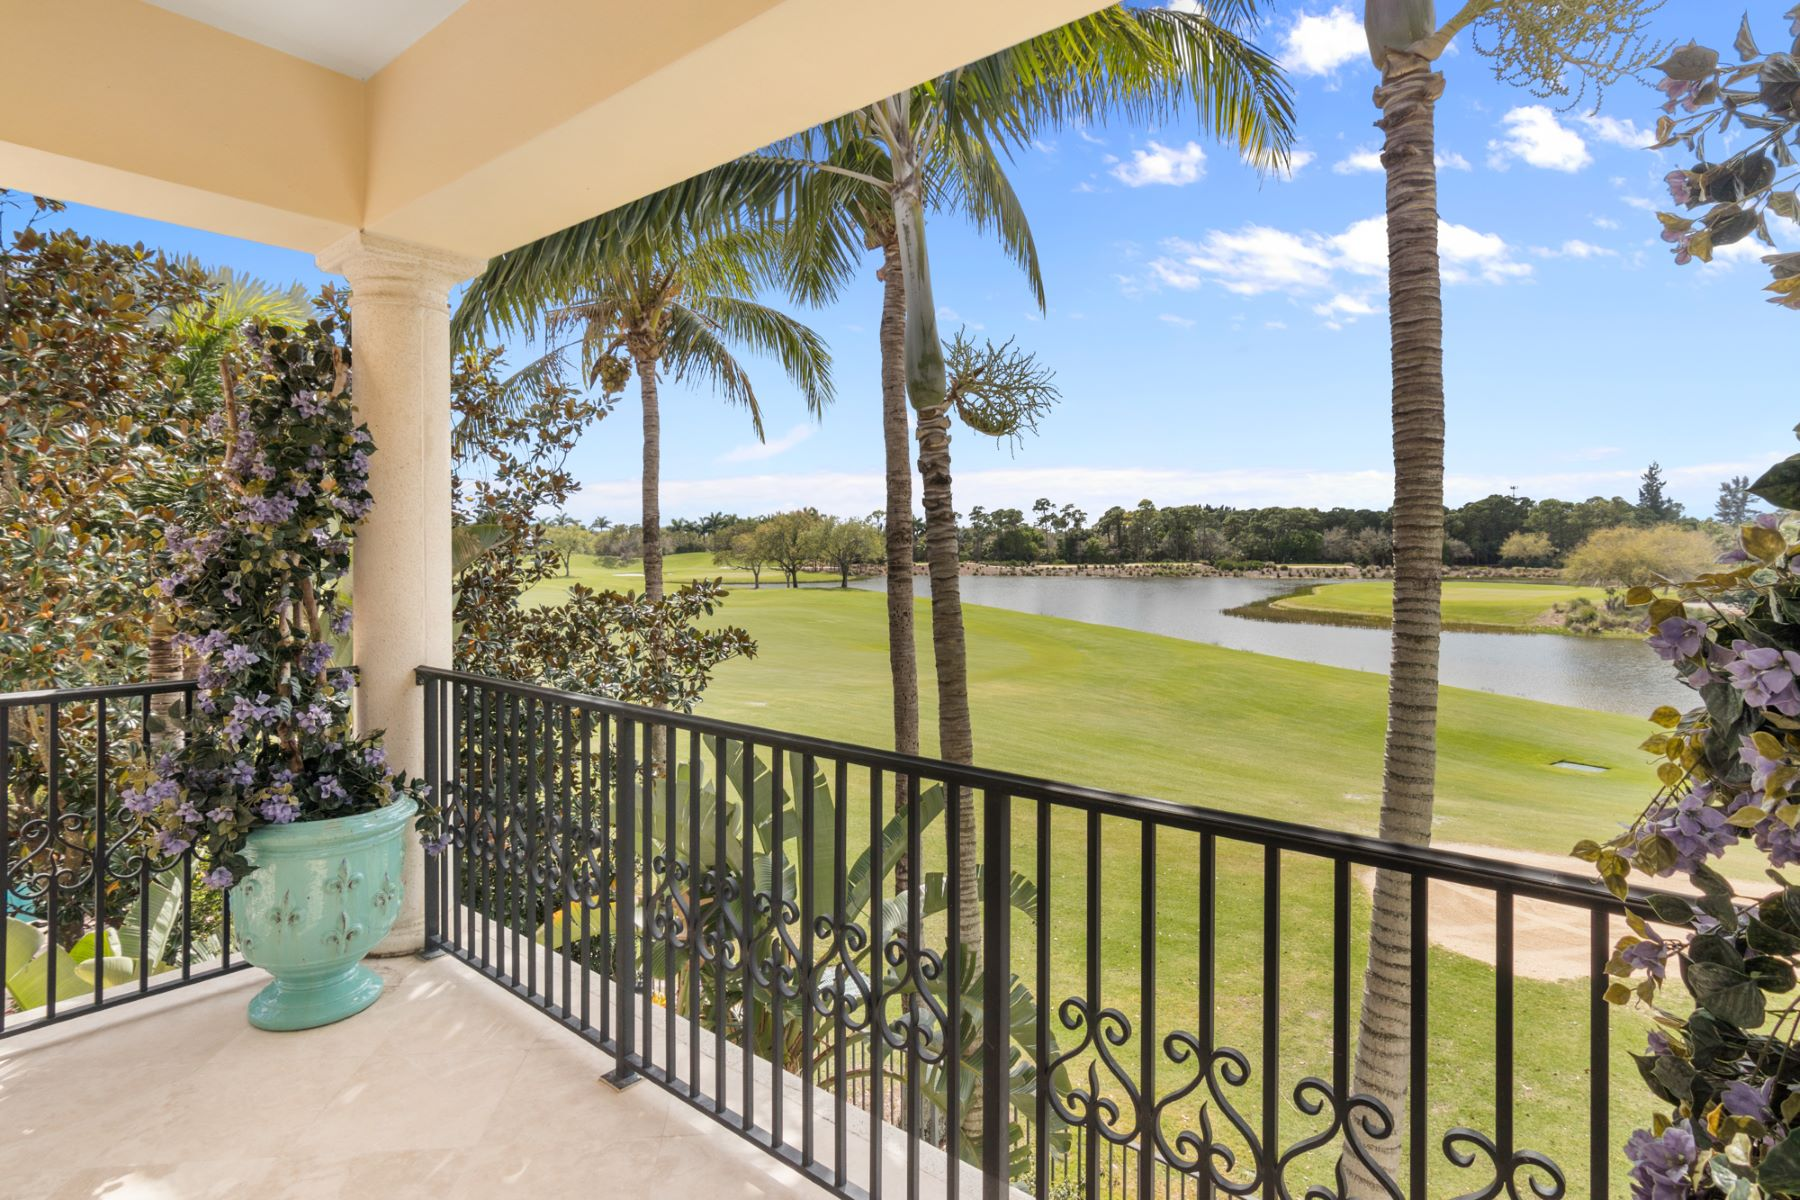 Vivienda unifamiliar por un Venta en 11127 Green Bayberry Drive Old Palm Golf Club, Palm Beach Gardens, Florida, 33418 Estados Unidos